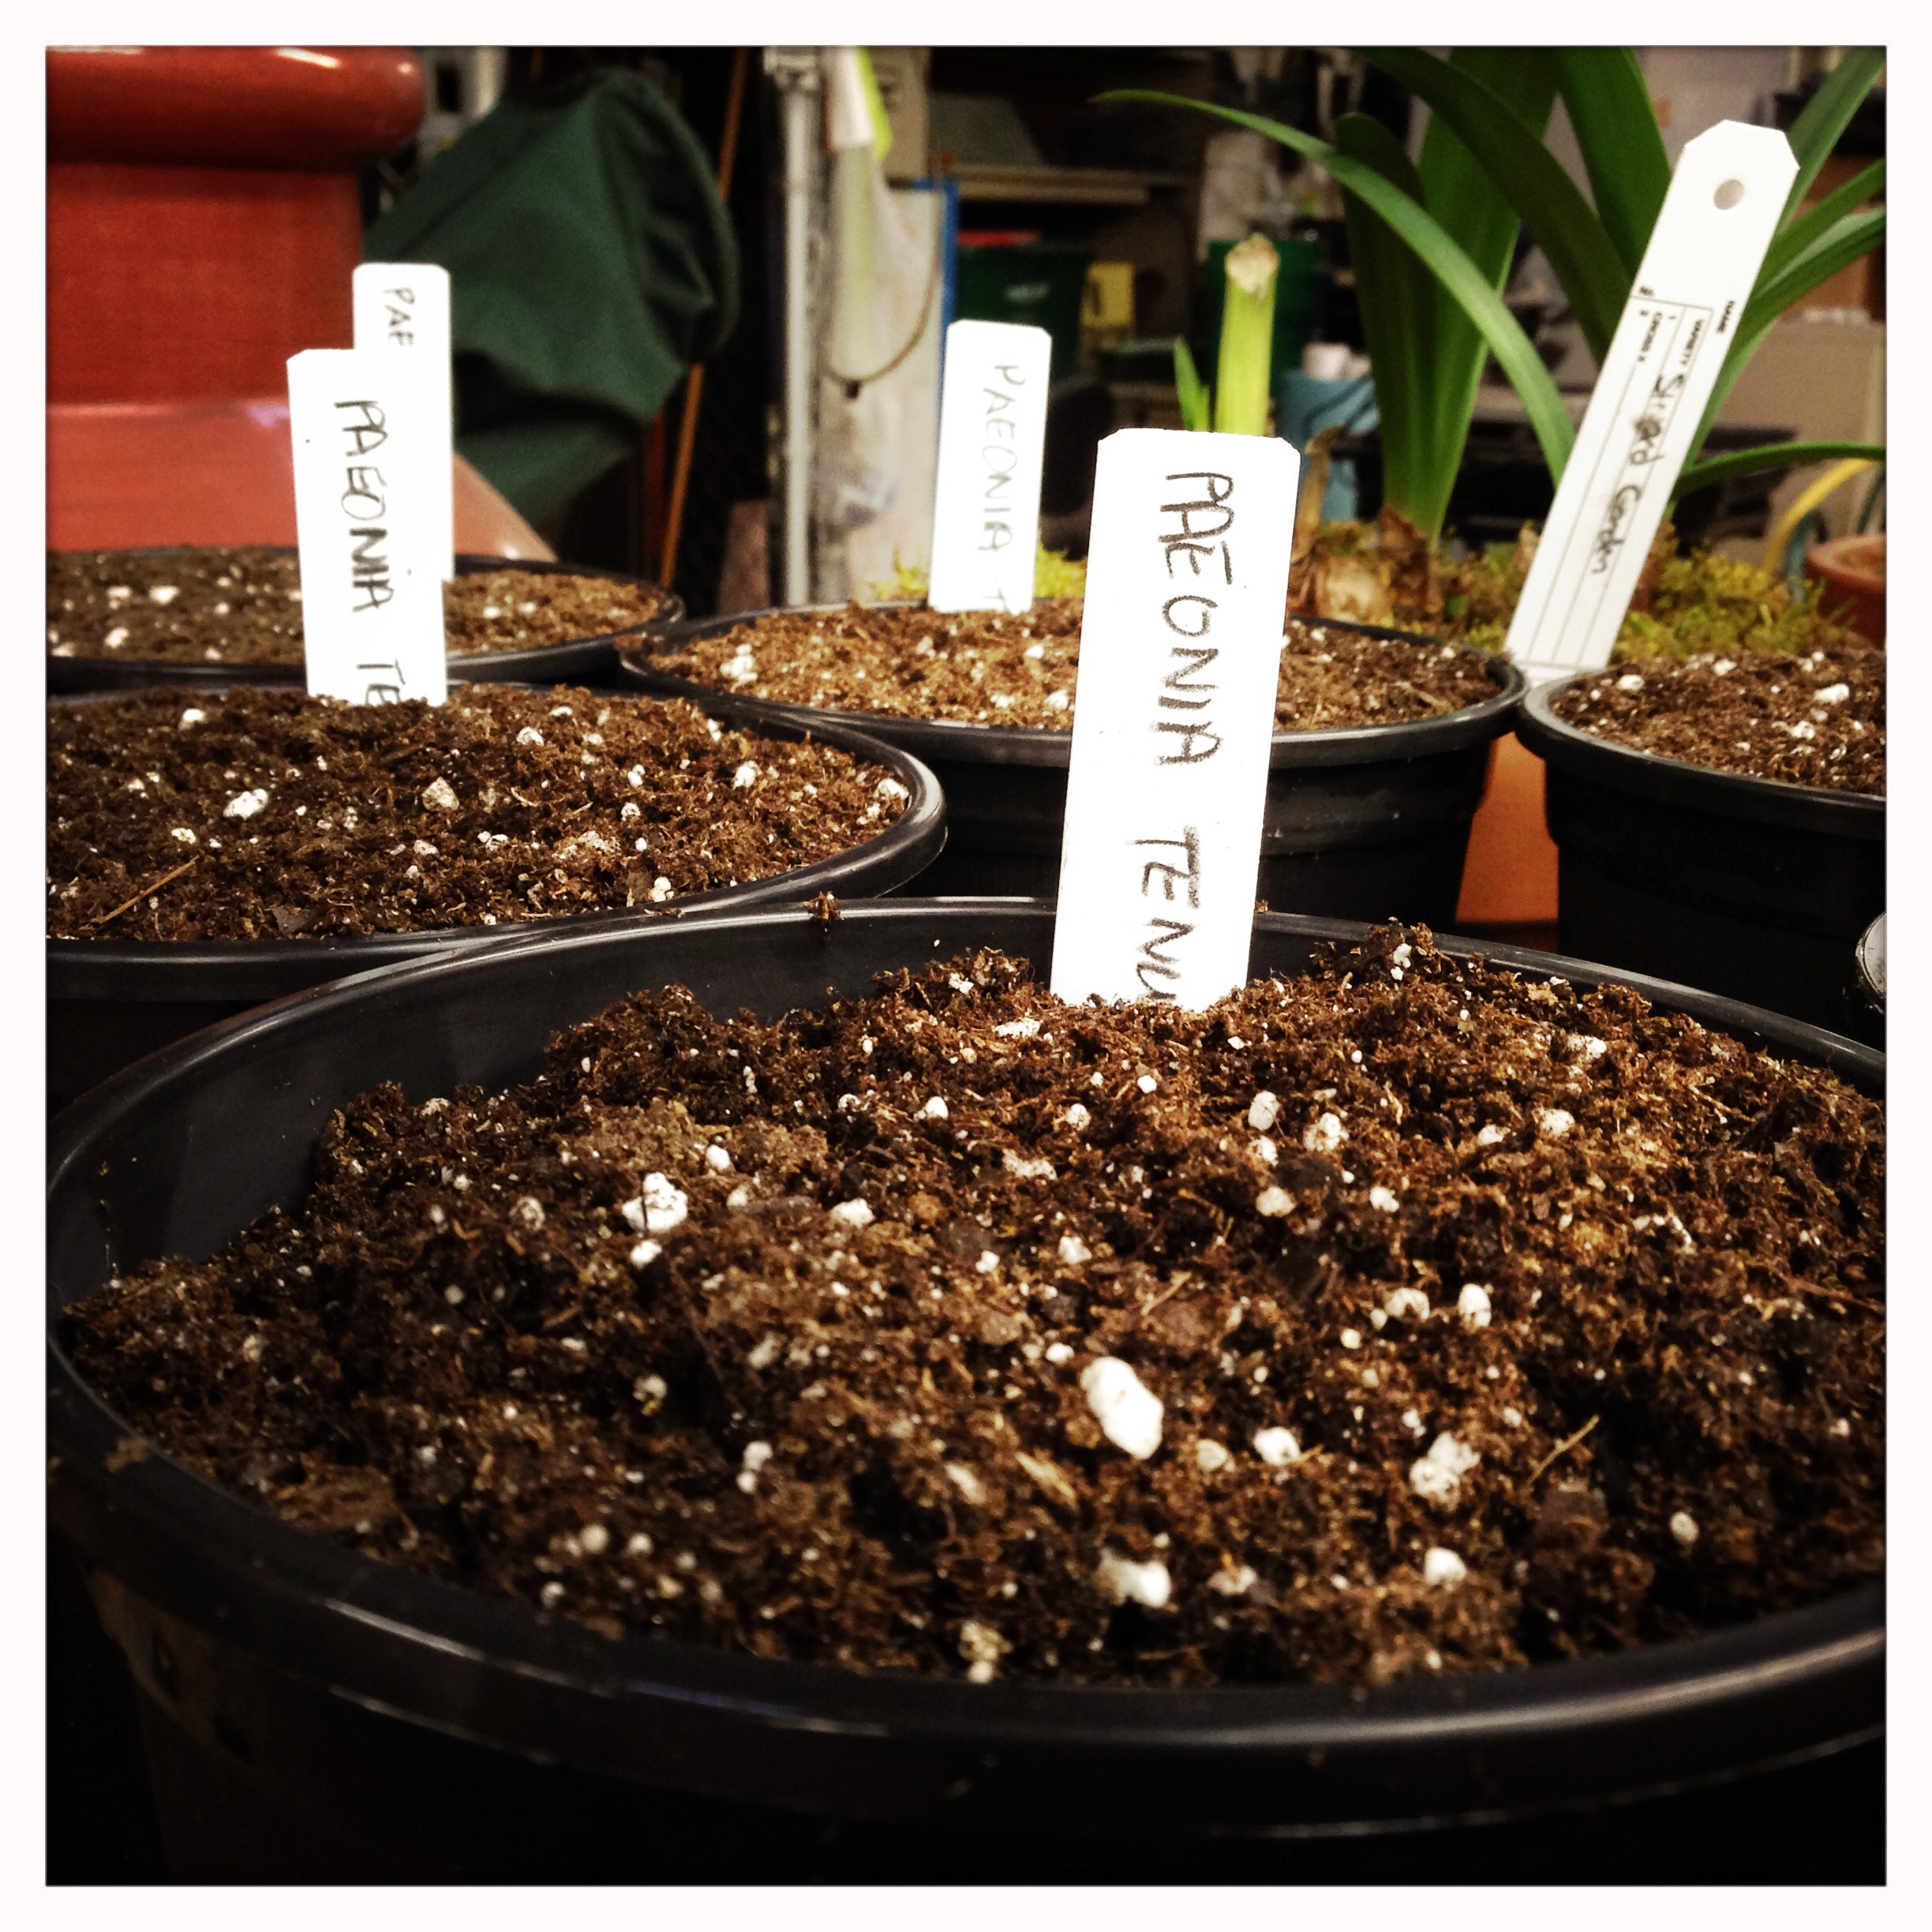 Paeonia tenuifolia,  potted and ready to grow for the Spring festival.